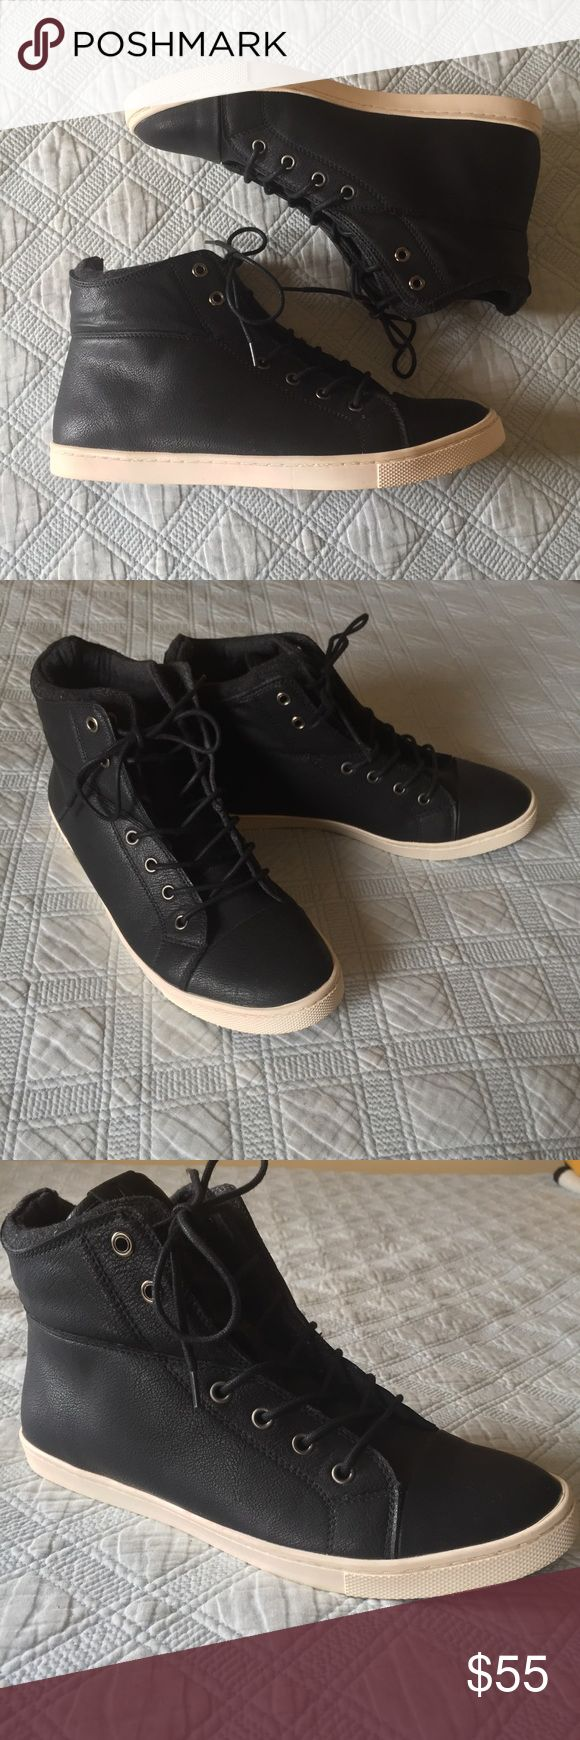 Aldo Black Leather Hi-Top Sneakers Aldo black leather Hi-top Sneakers. In like new condition....literally worn once. No scuffs. Does not include box. US size 10.5 Aldo Shoes Sneakers